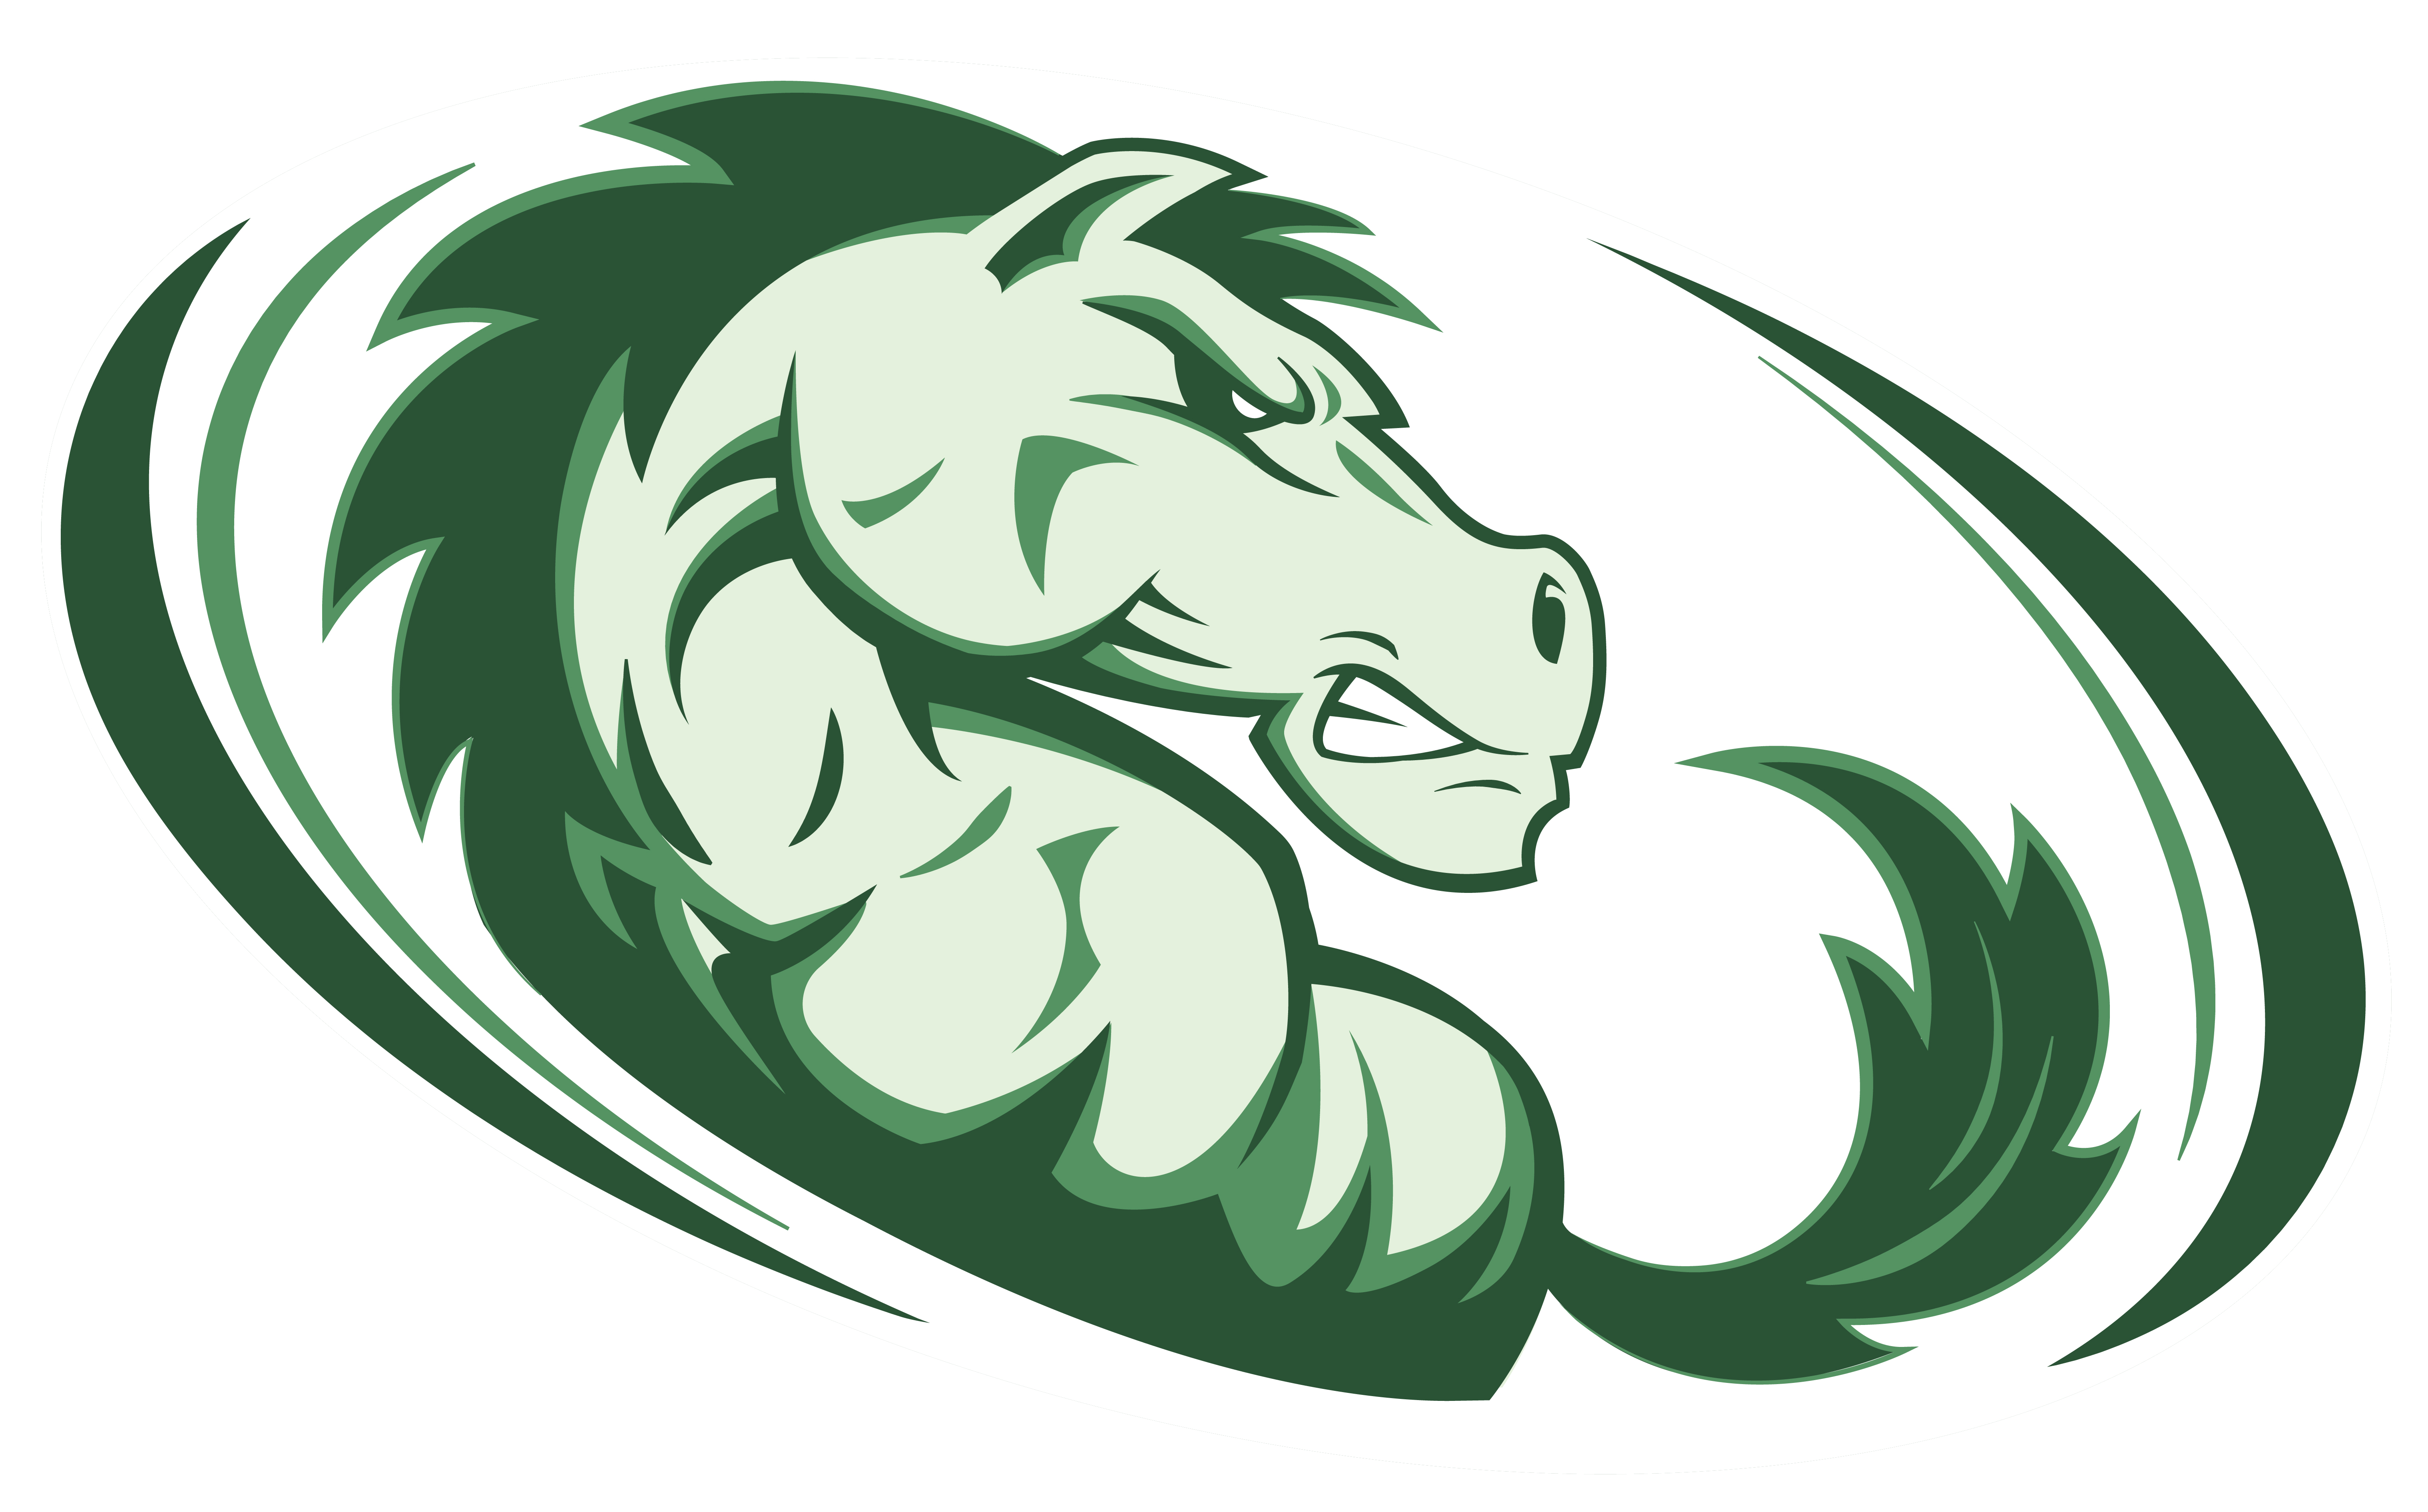 Mustang clipart central middle school. Strongsville team home mustangs